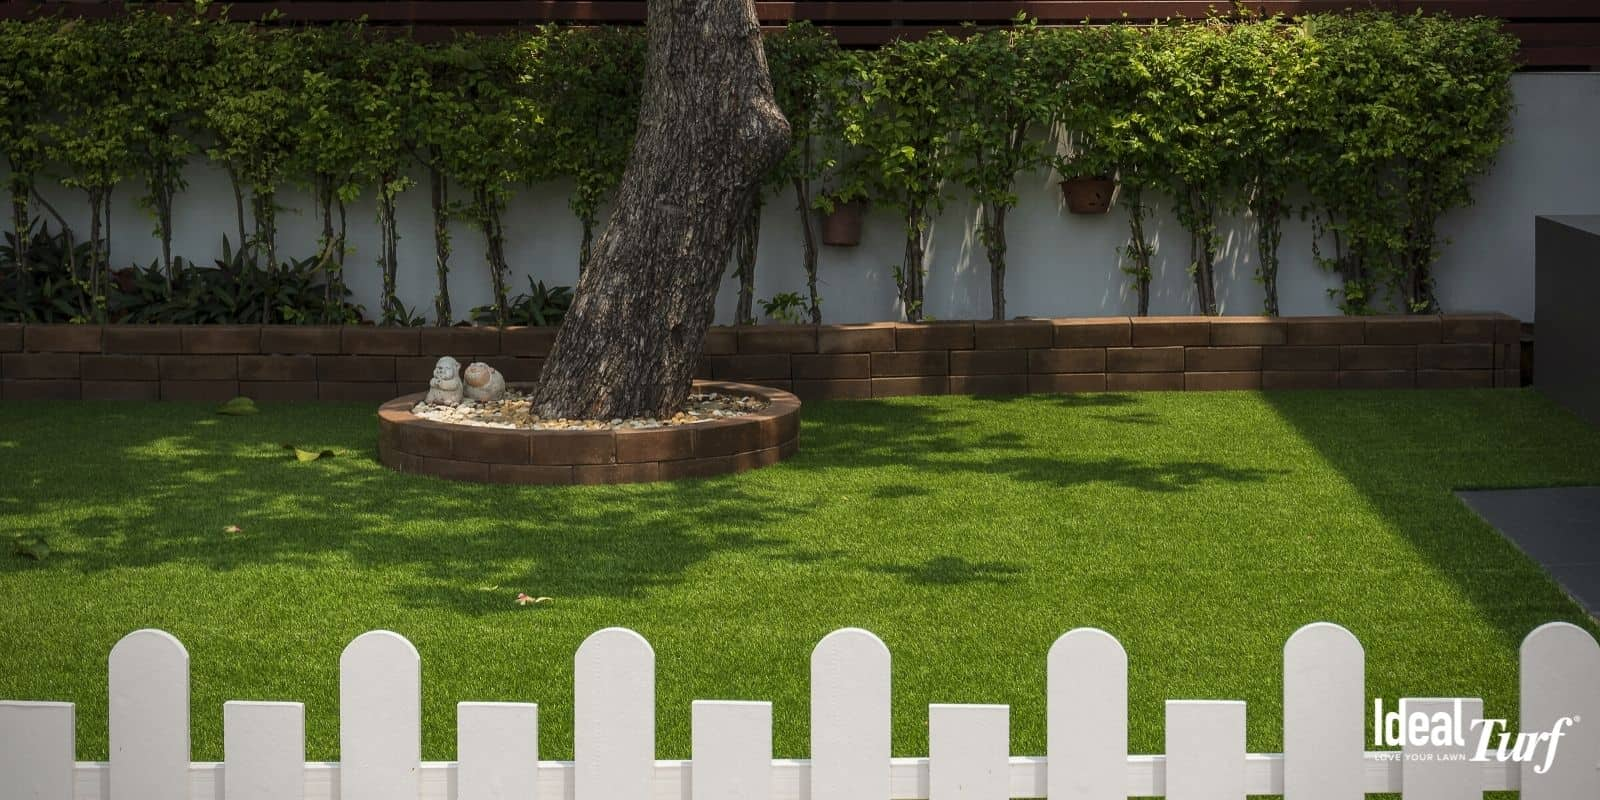 Residential backyard with artificial turf lawn surrounded by white picket fence